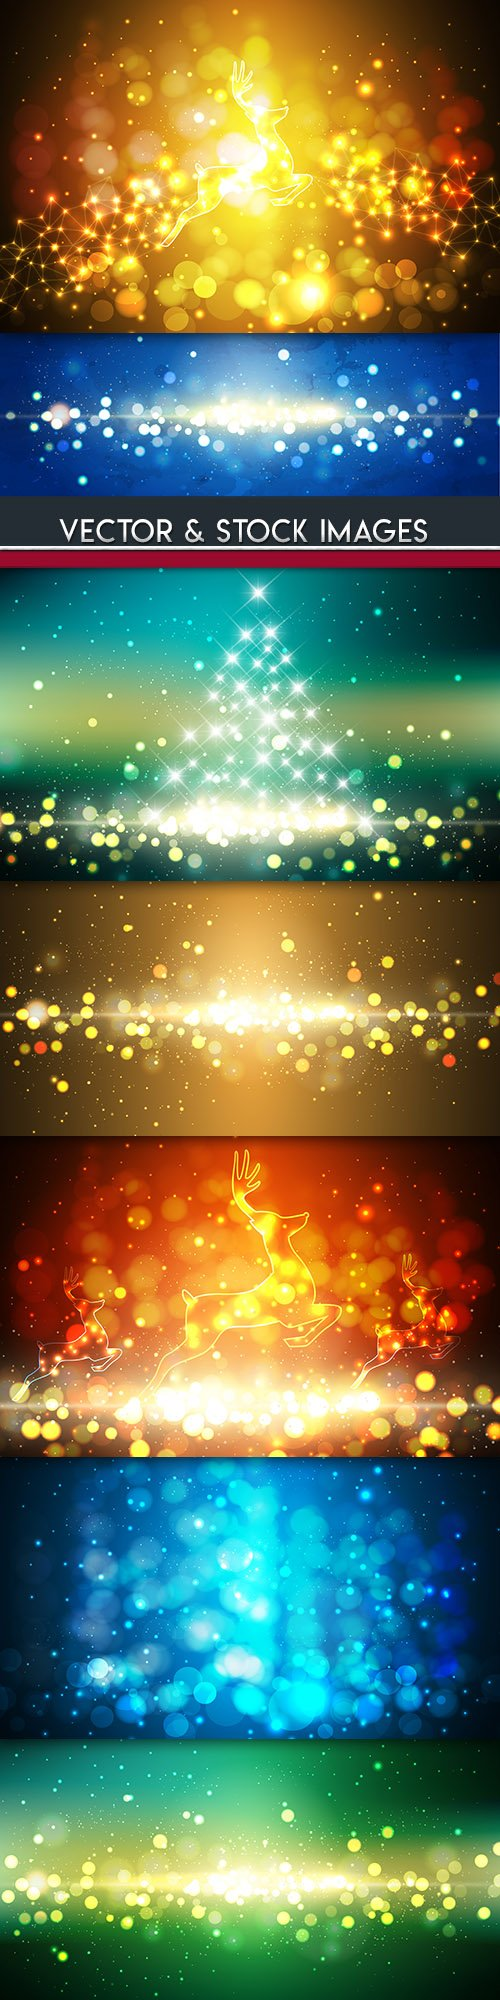 Merry Christmas and New Year background decorative 14